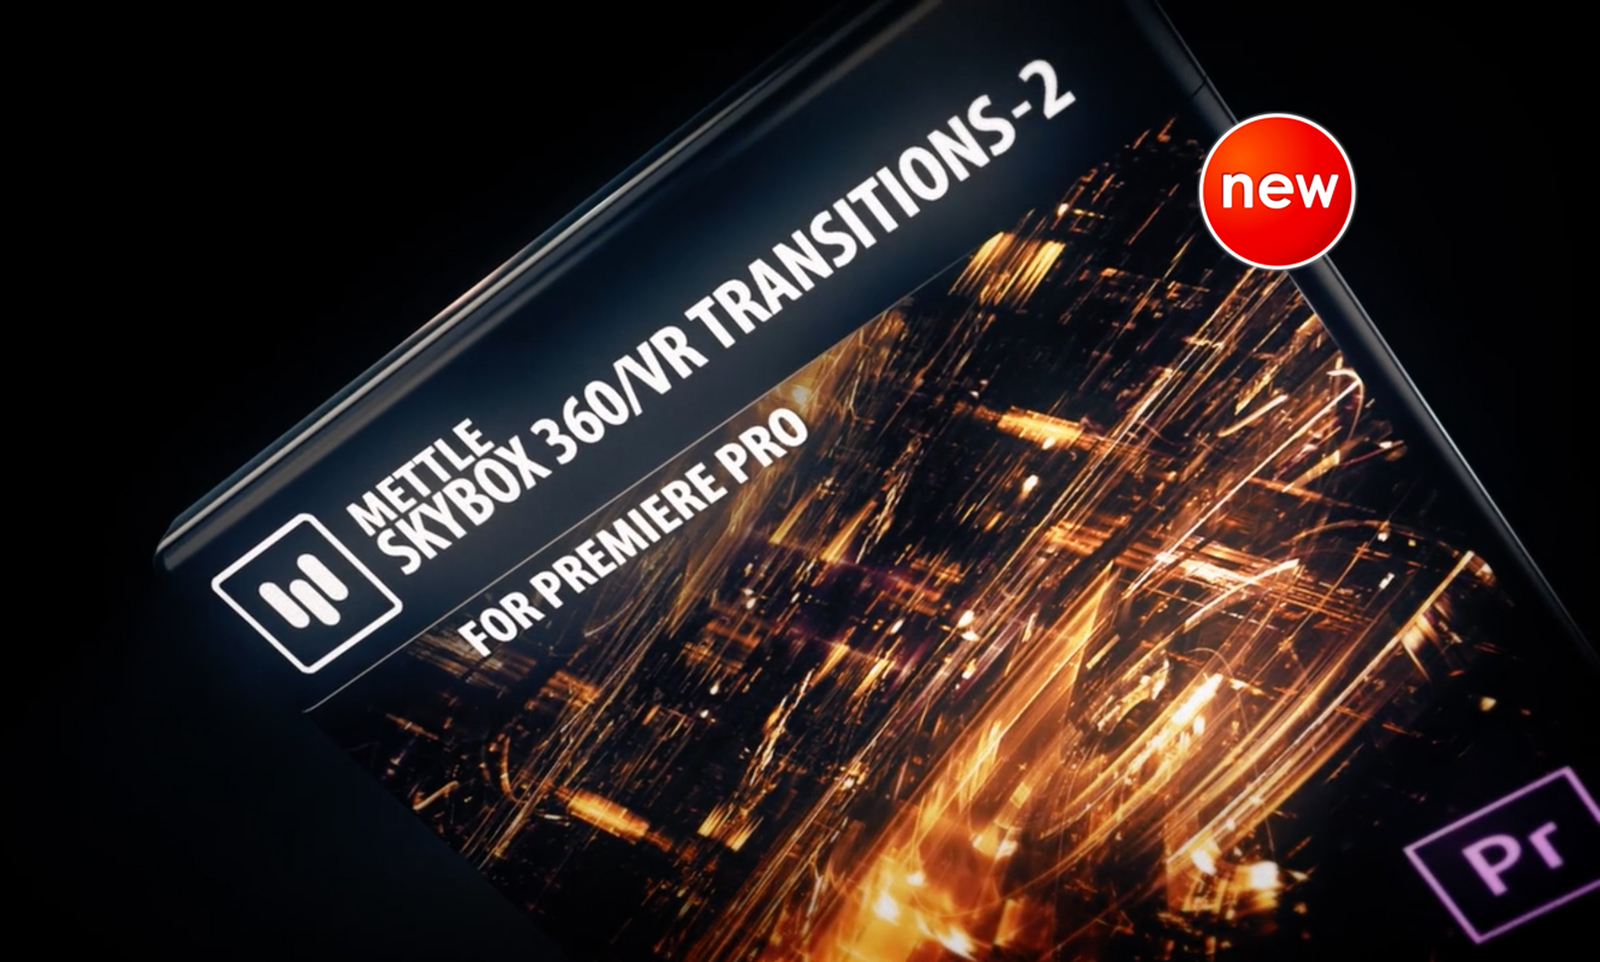 New-Transitions-2-featured-image